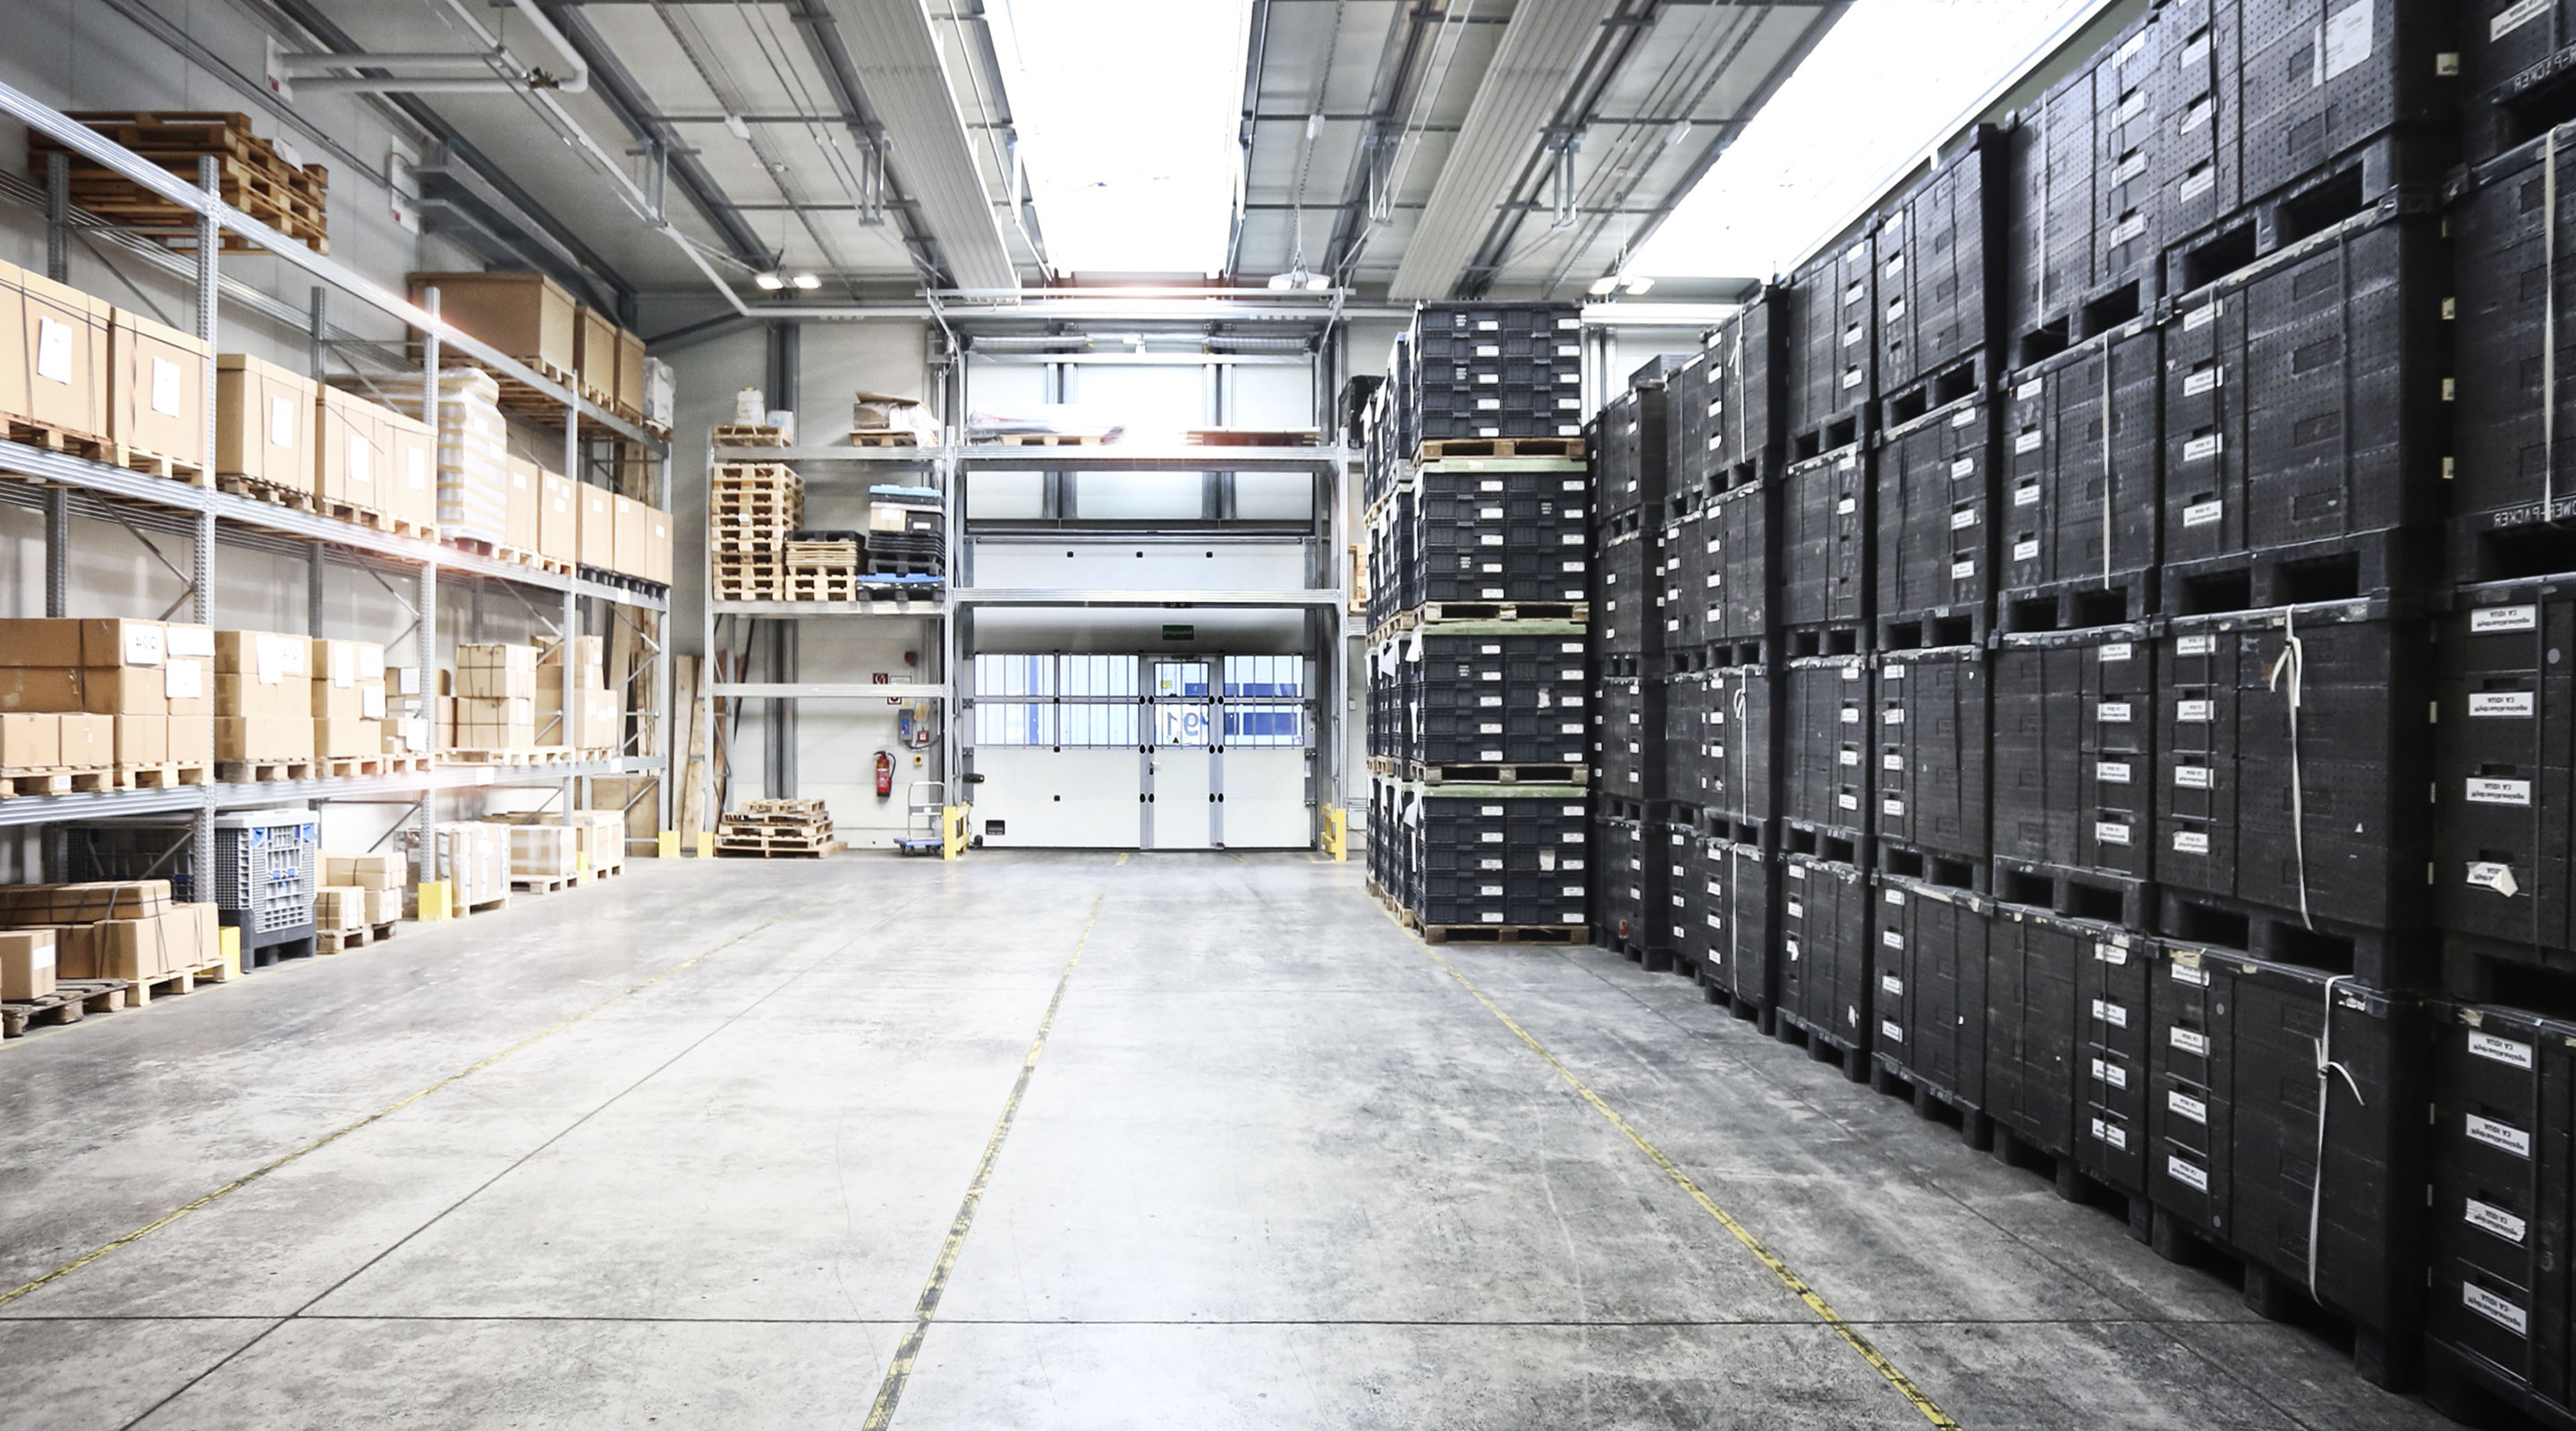 Warehouse interior with crates stacked neatly